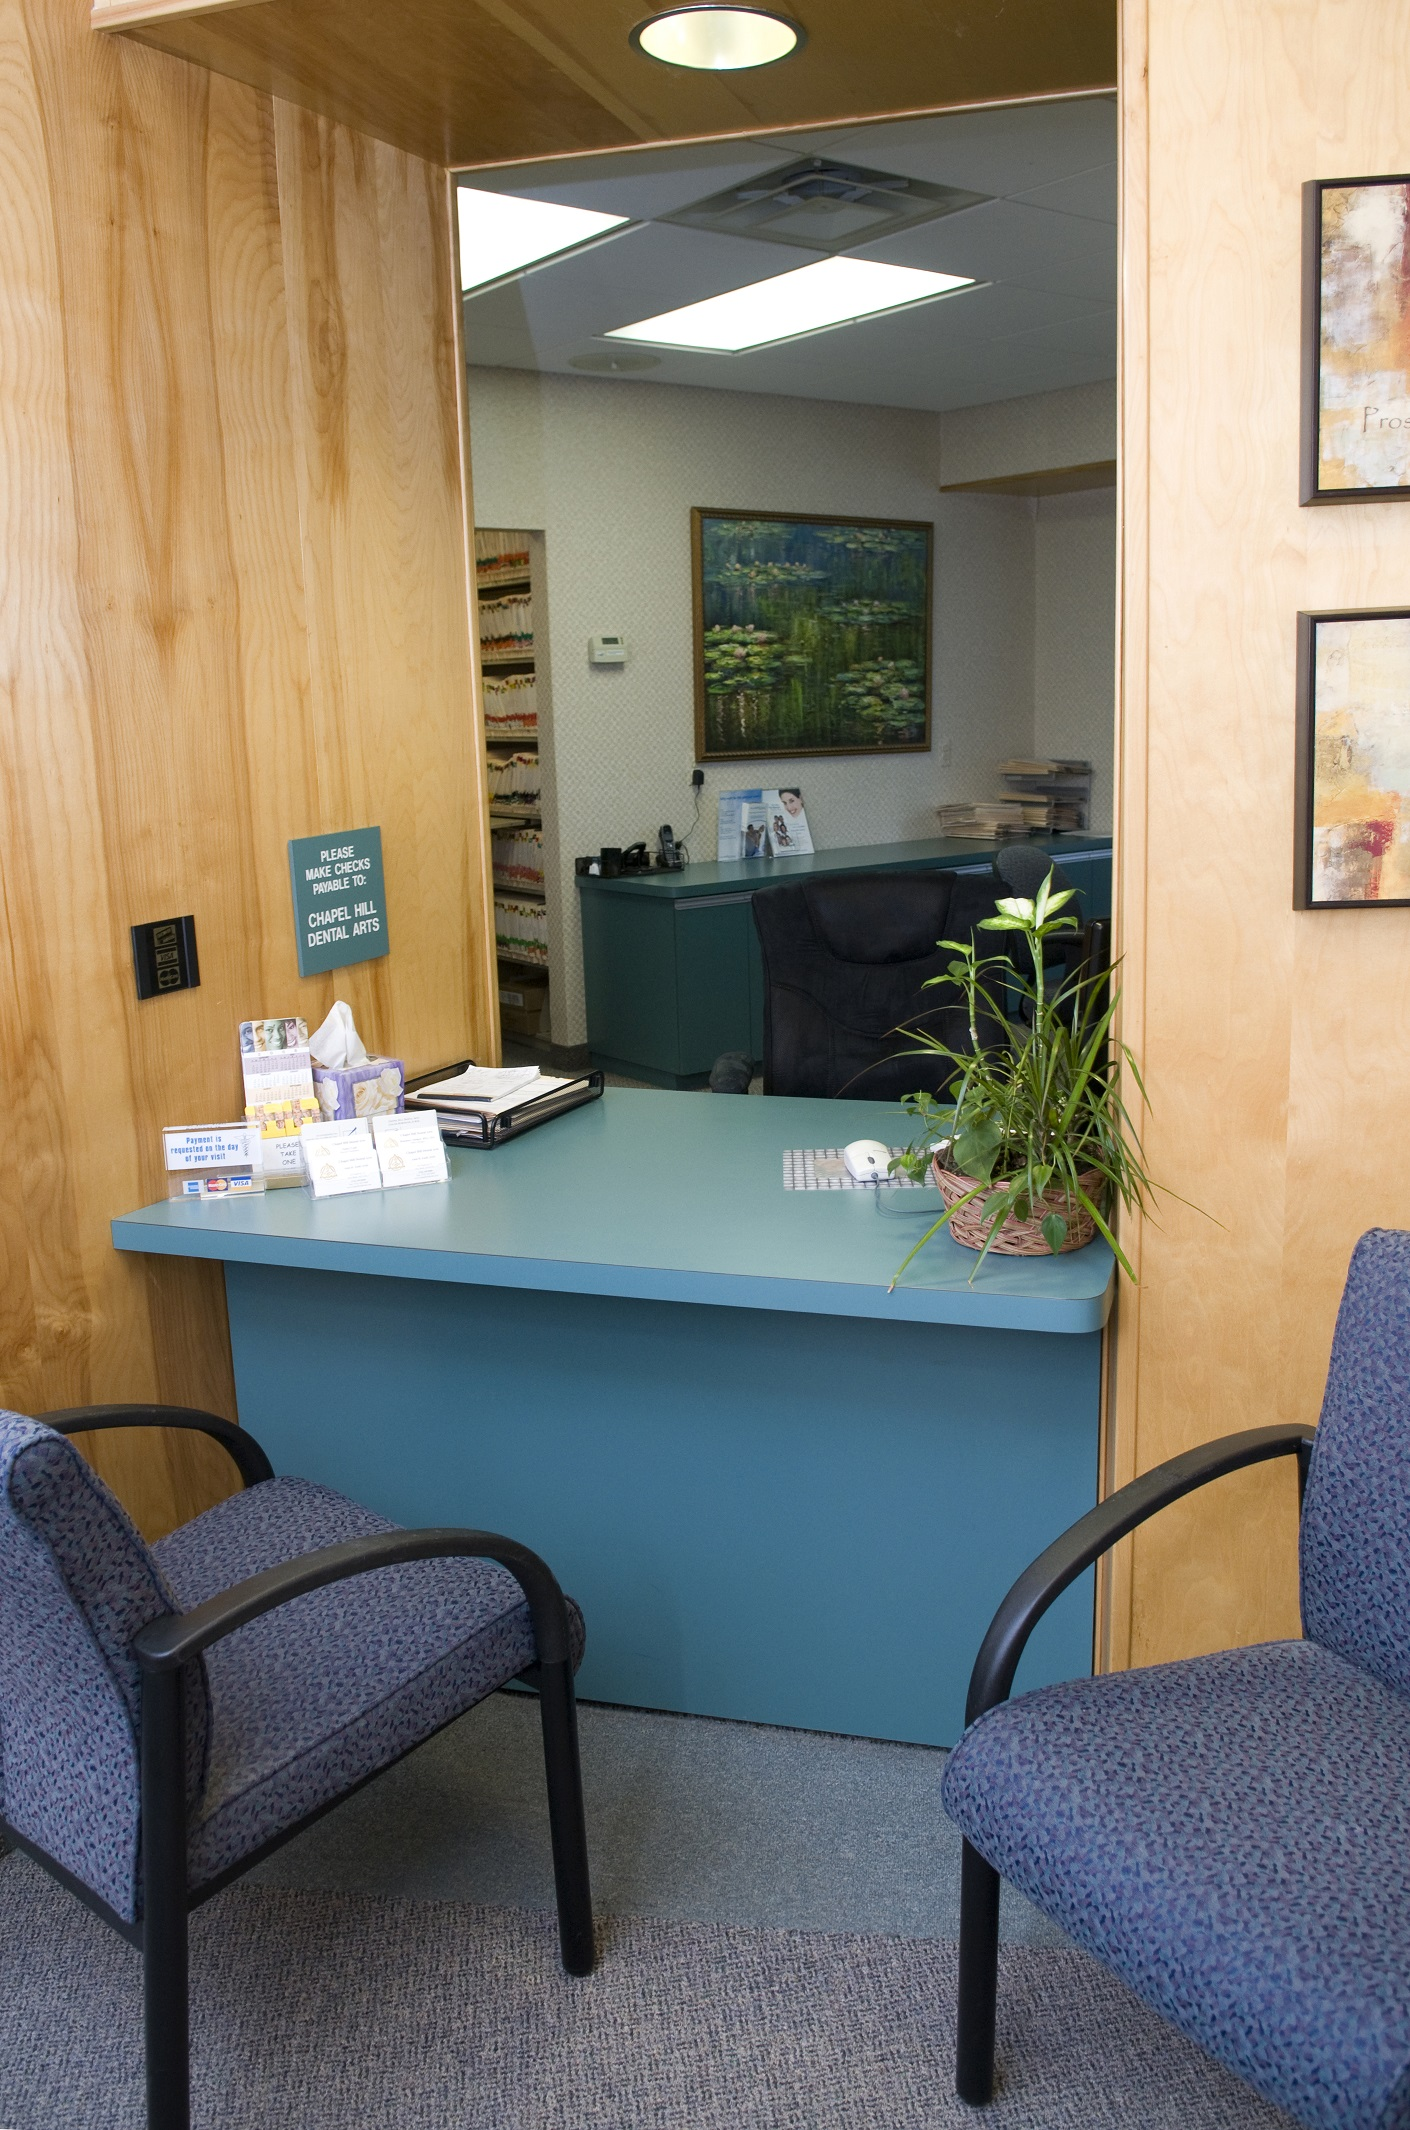 Chapel Hill Dental Arts Check-In Area